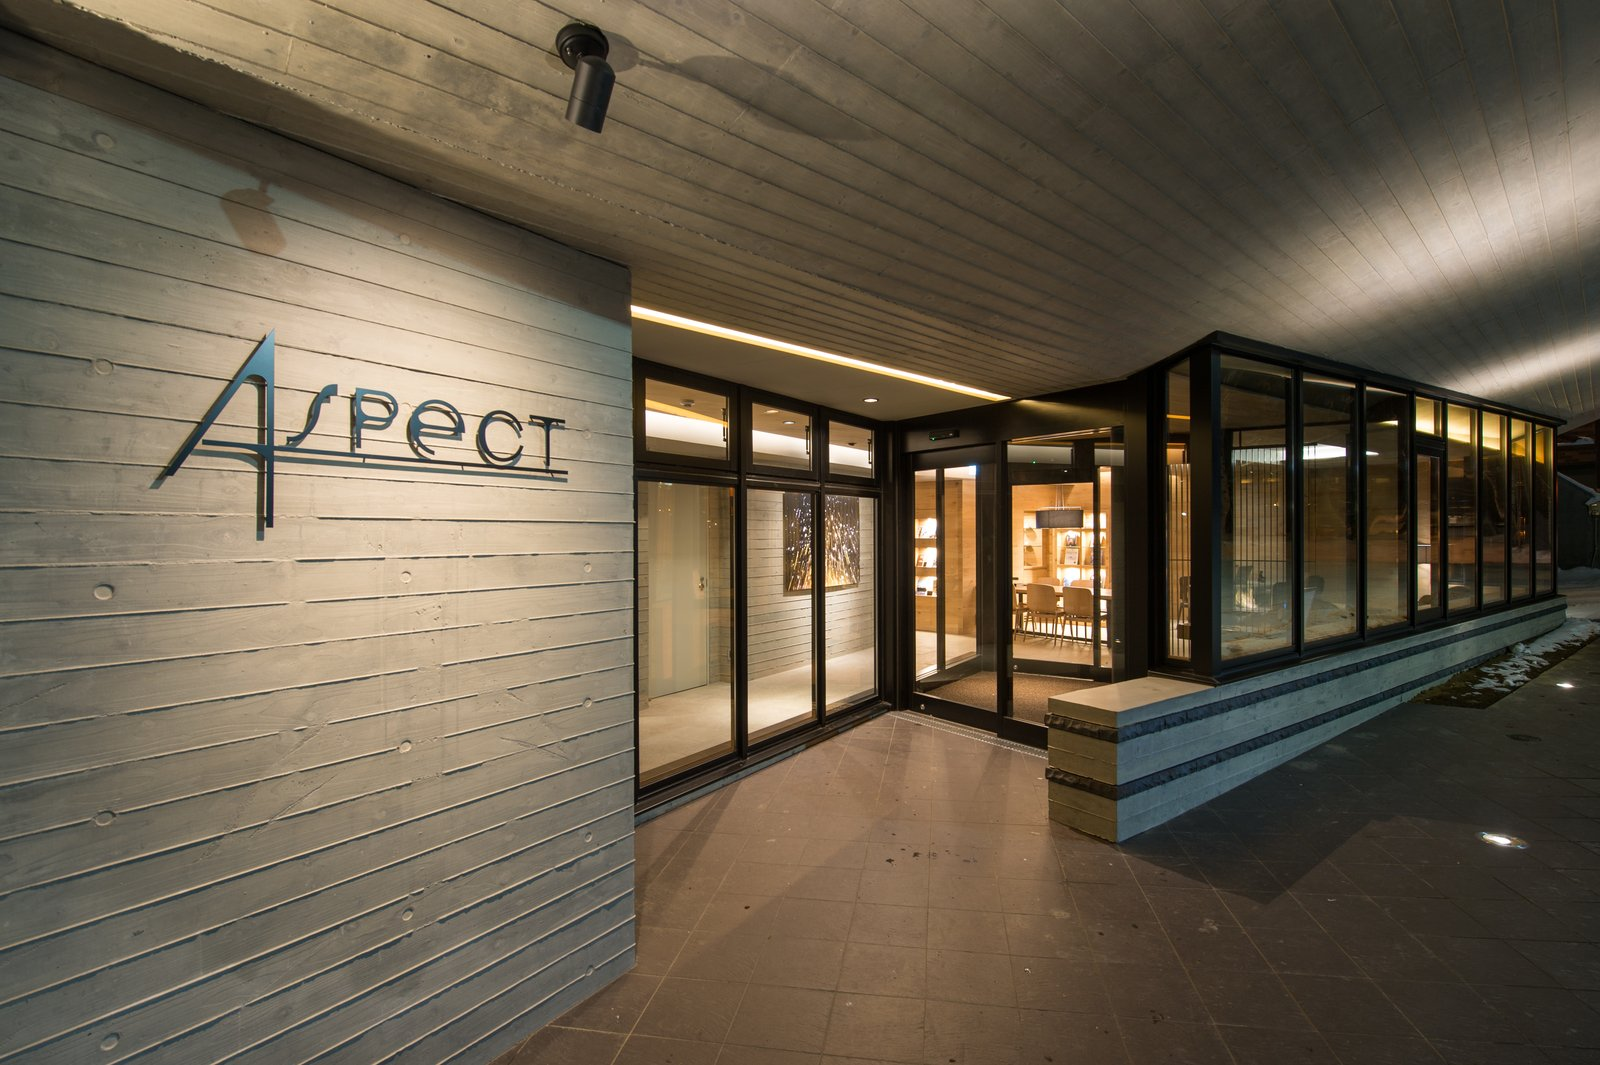 Aspect entrance large